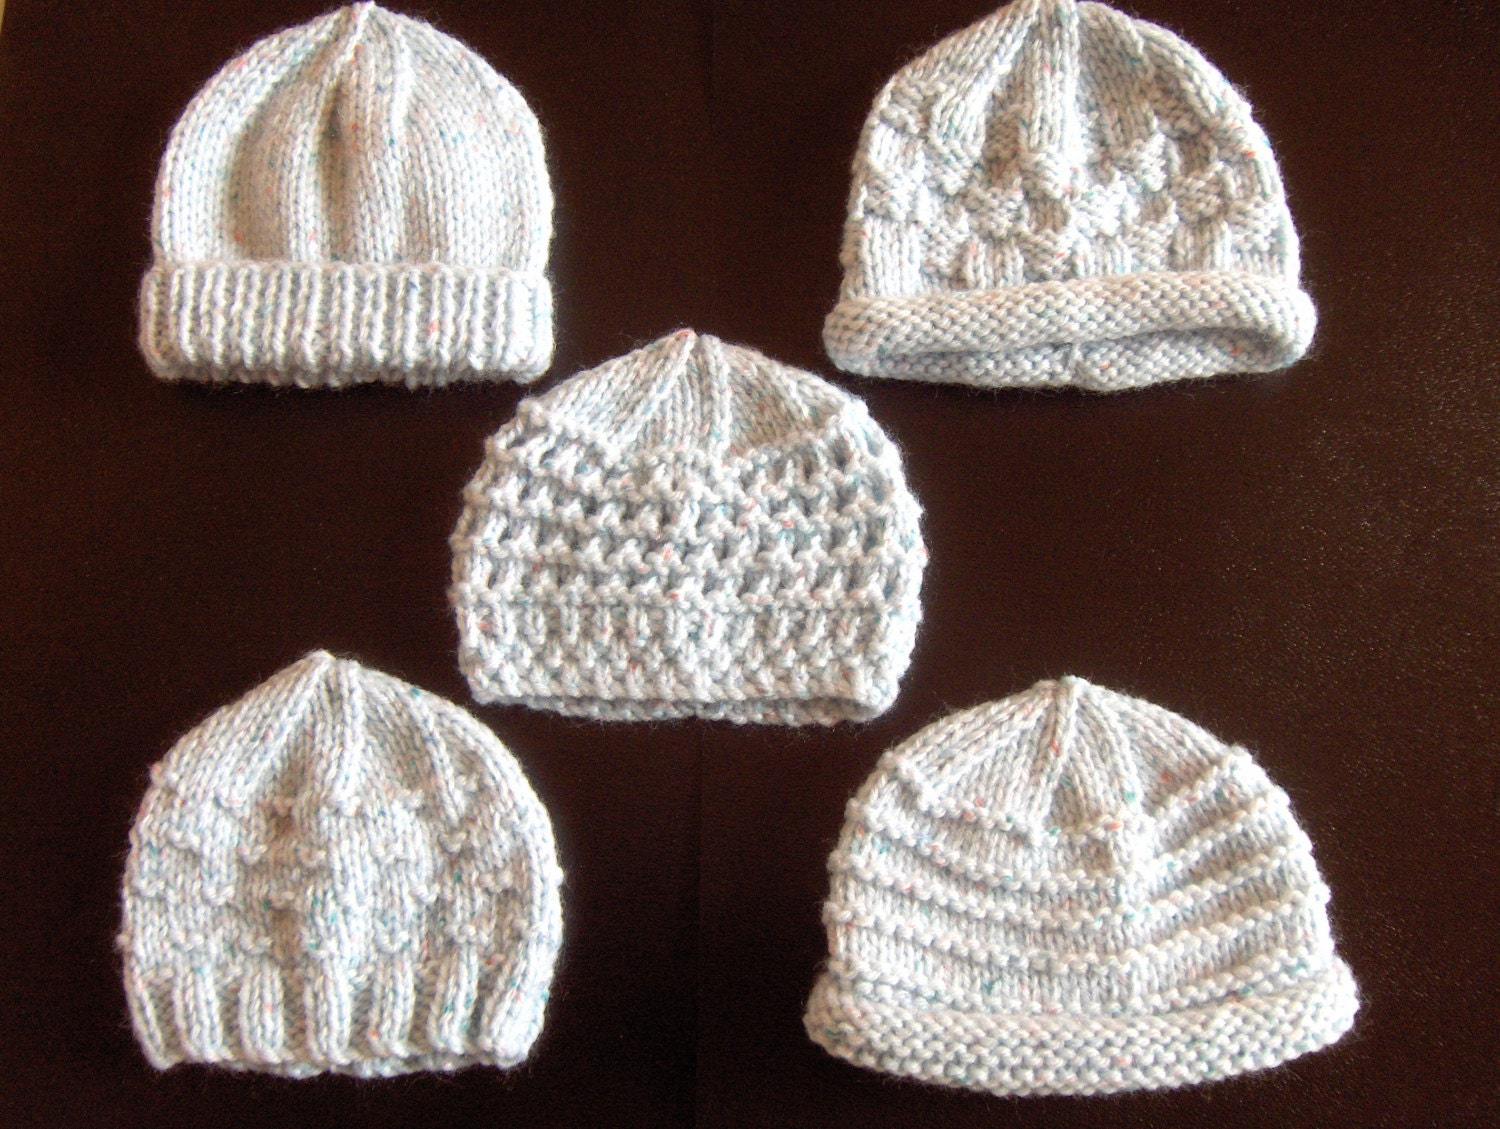 Knitting Pattern Central Baby Hats : Premature Small Baby Knitting Pattern For 5 Hats